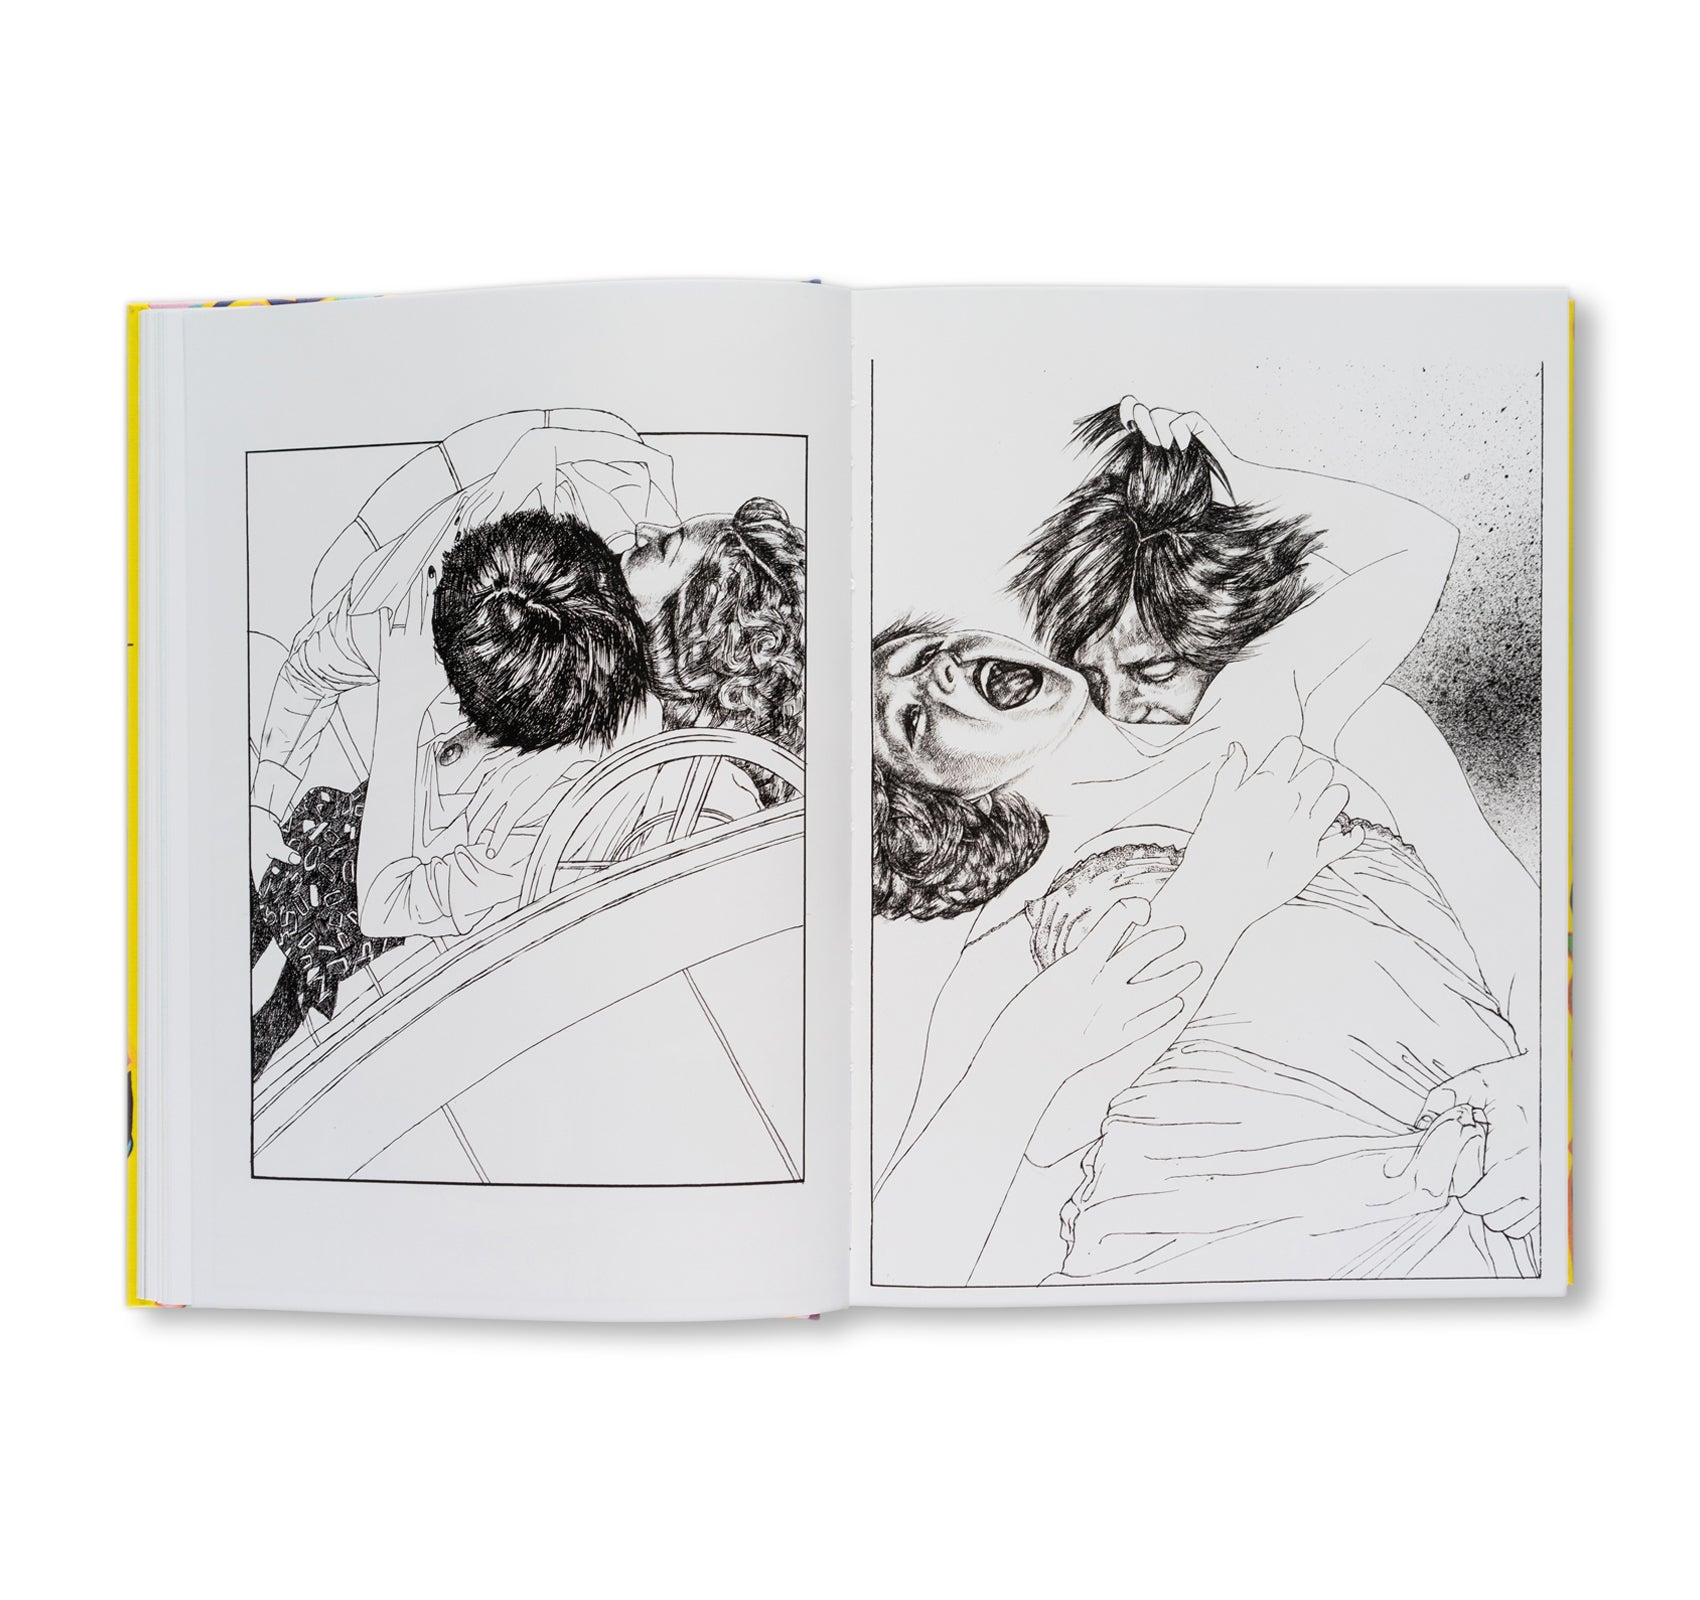 BILDRAUSCH. DRAWINGS 1966-2018 by Walter Pfeiffer